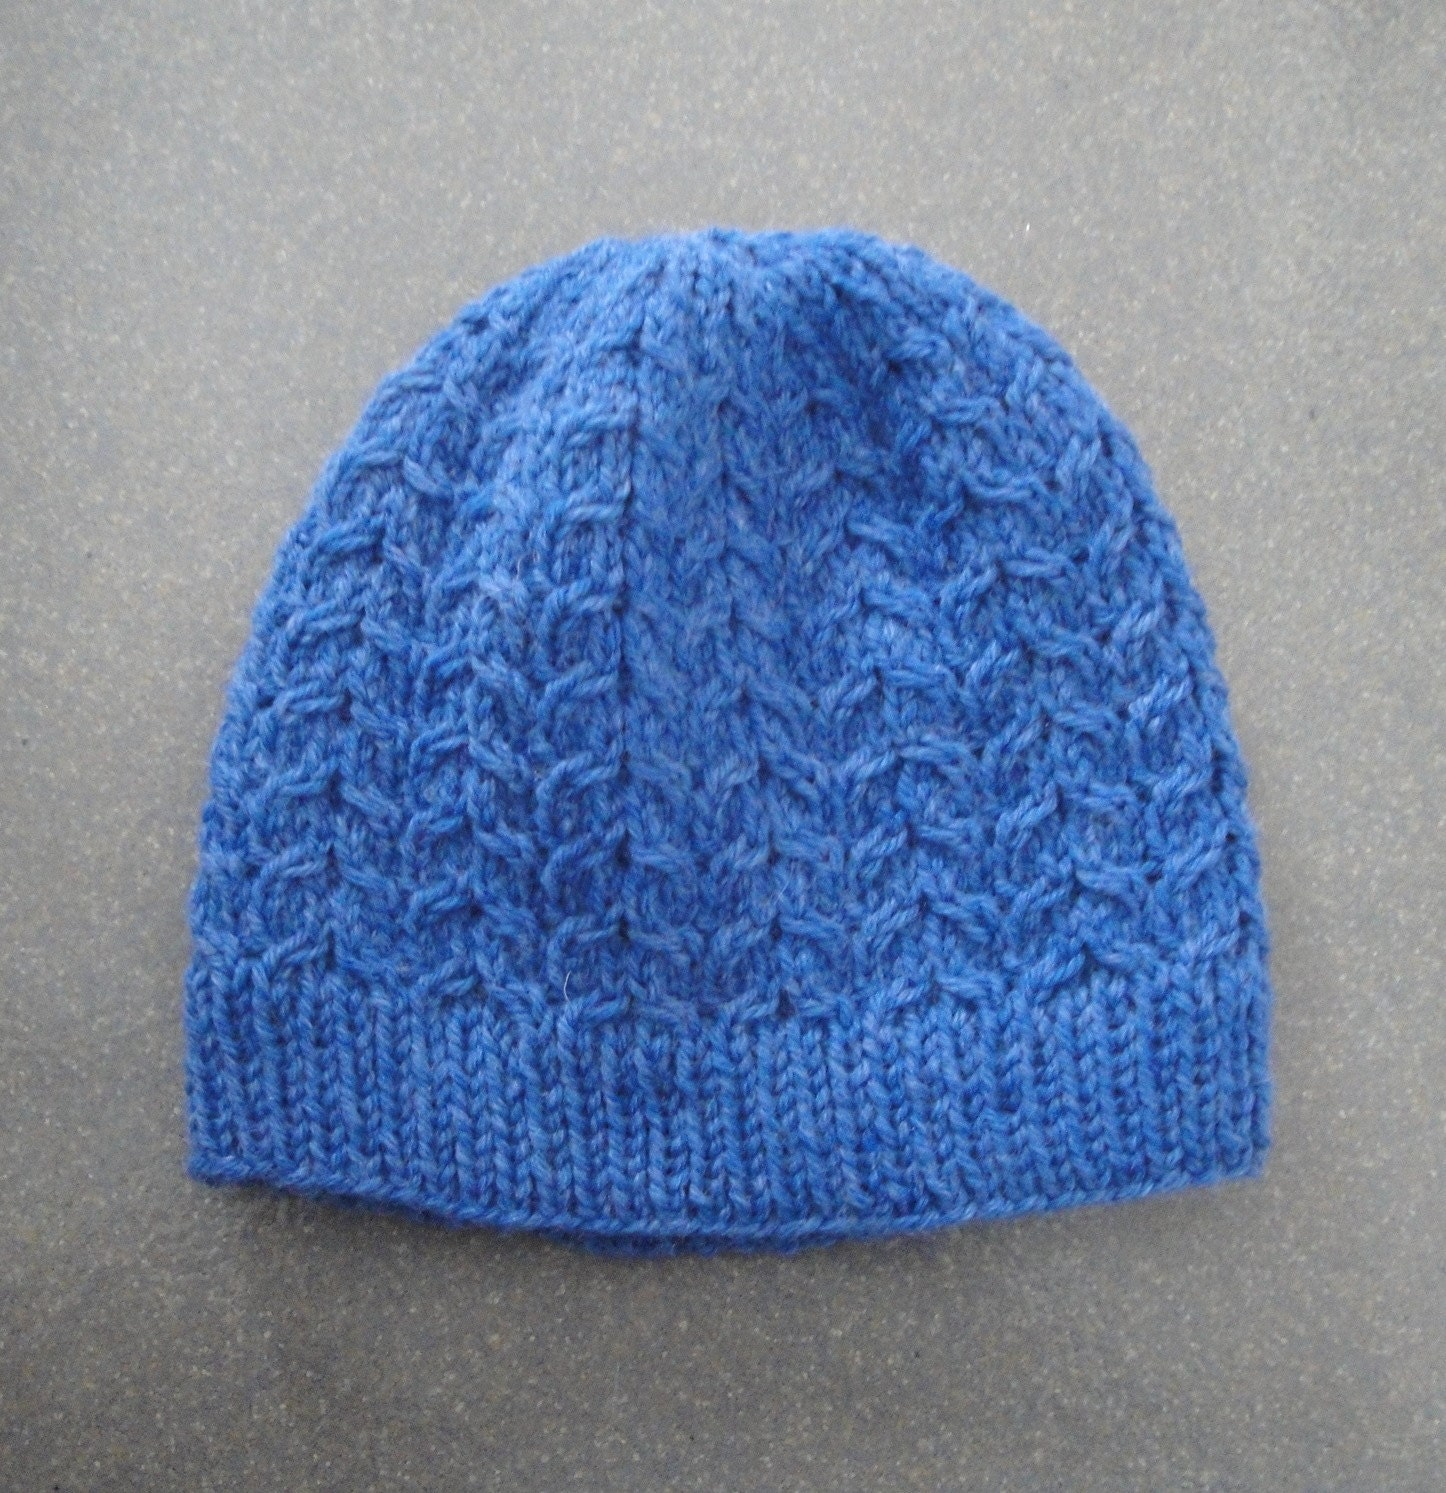 Knitting Beanie Patterns : Copy cable beanie pdf knitting pattern intermediate cabled